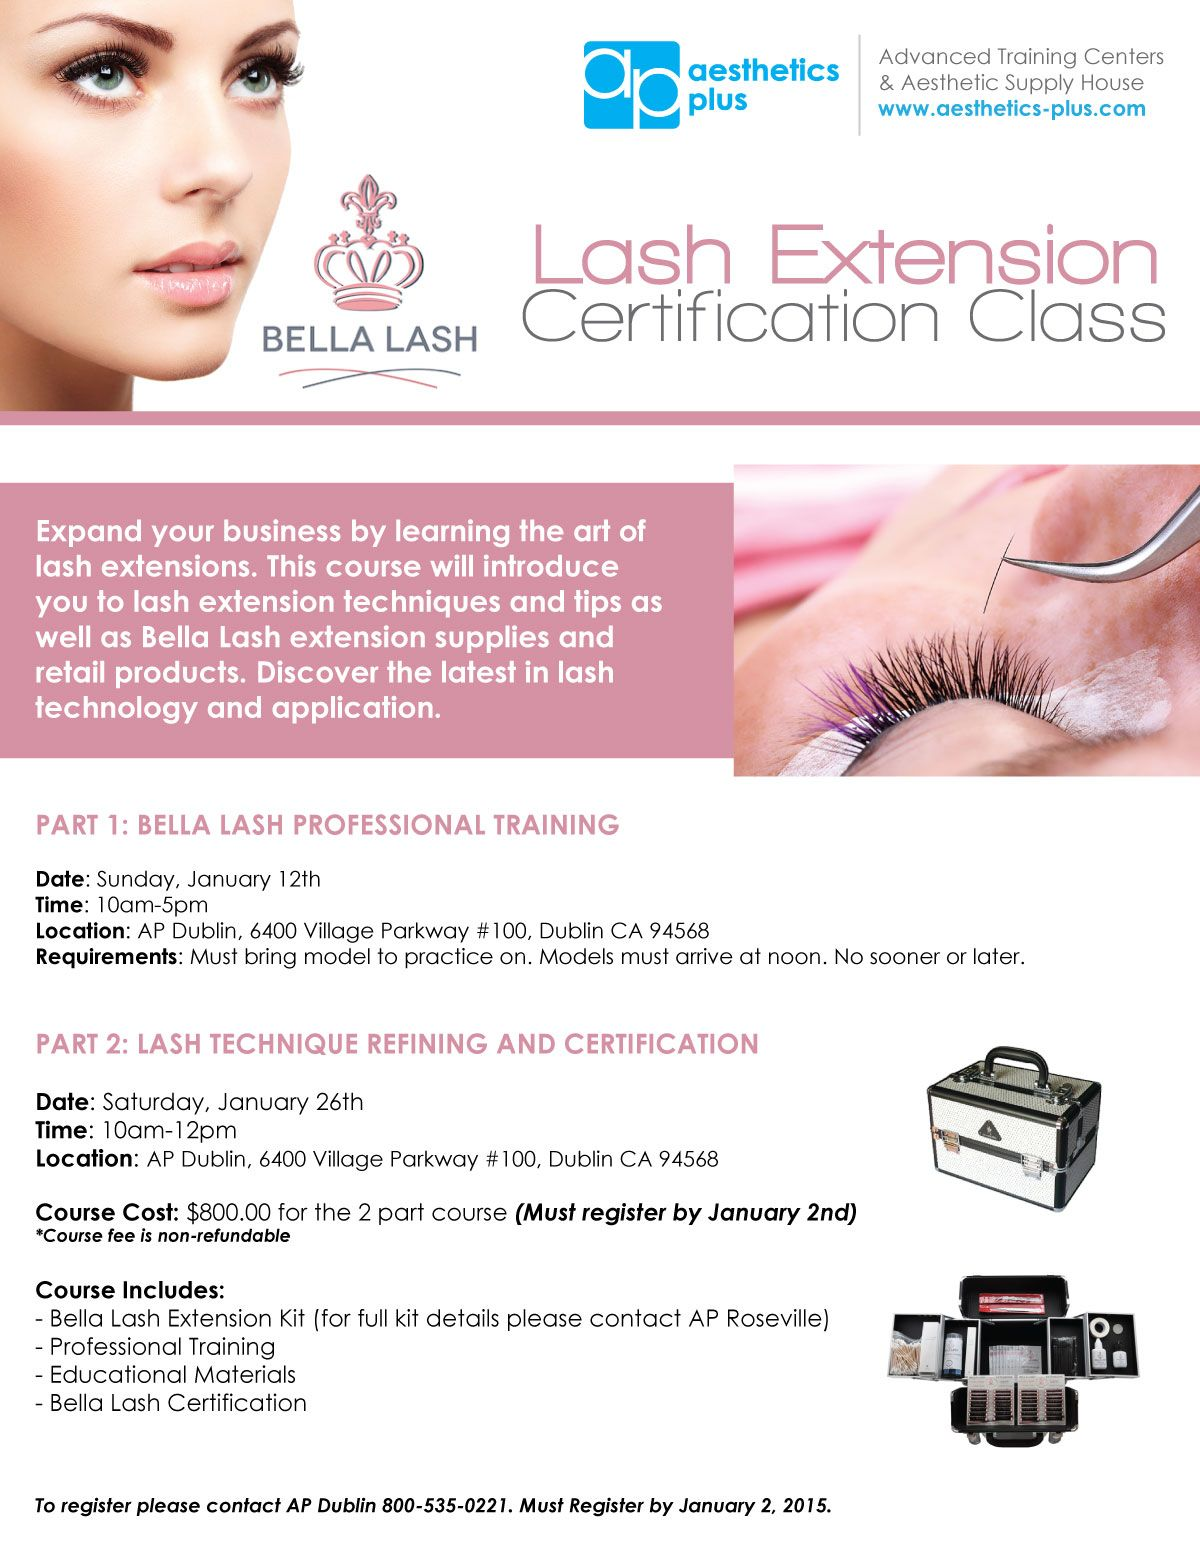 Come learn the art of lash extensions at our Lash Extension ...